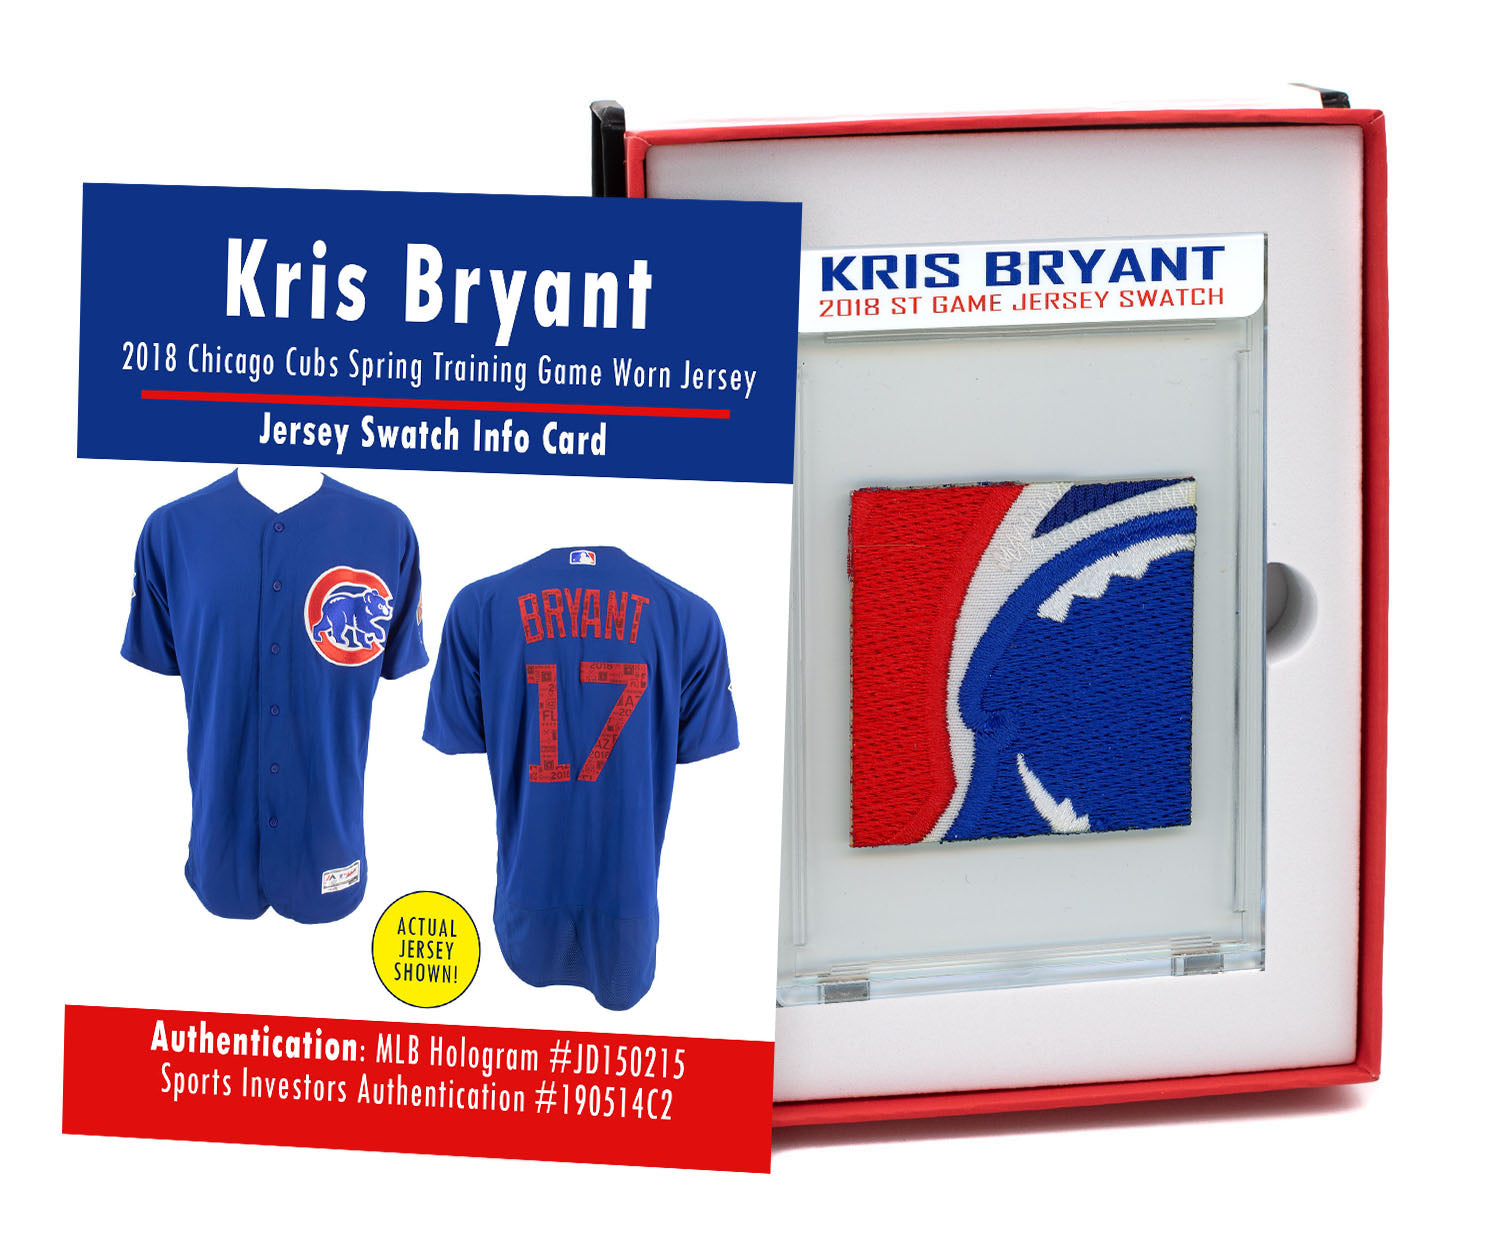 KRIS BRYANT 2018 CUBS SPRING TRAINING GAME WORN JERSEY MYSTERY SEALED SWATCH BOX!